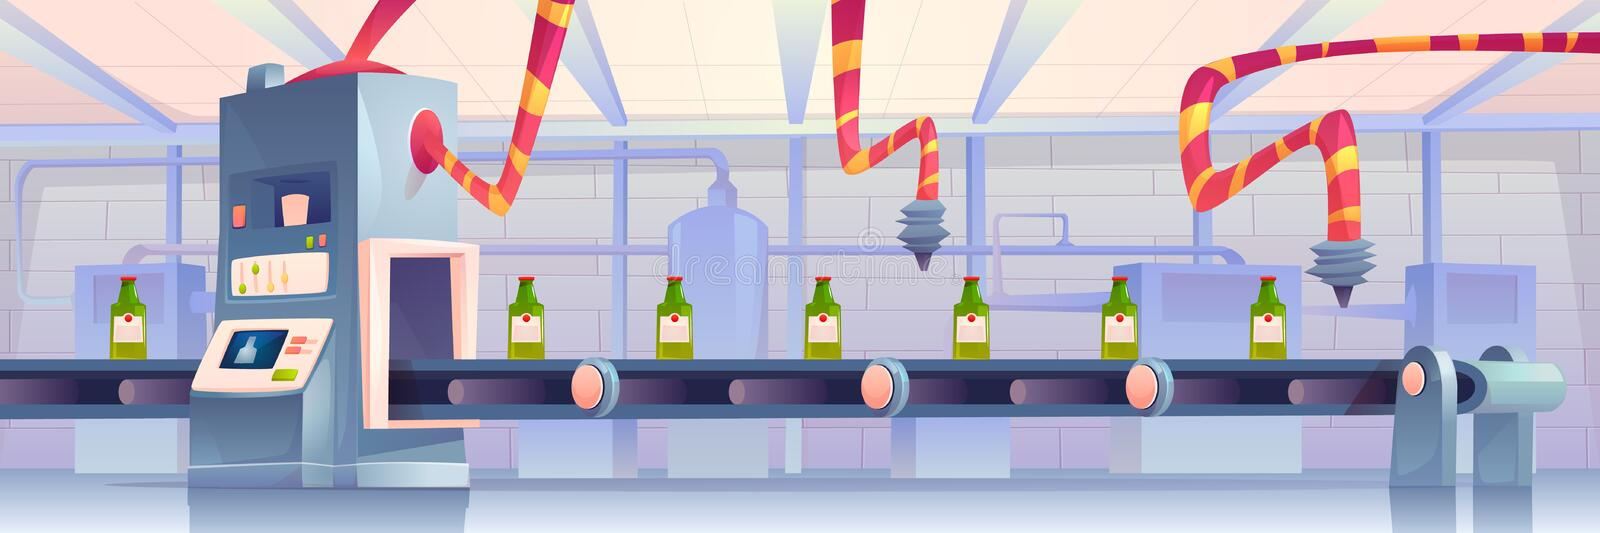 Bottles on conveyor belt at factory. Automation. Bottles on conveyor belt at factory. Production in glass flasks package moving on transporter line with robots royalty free illustration